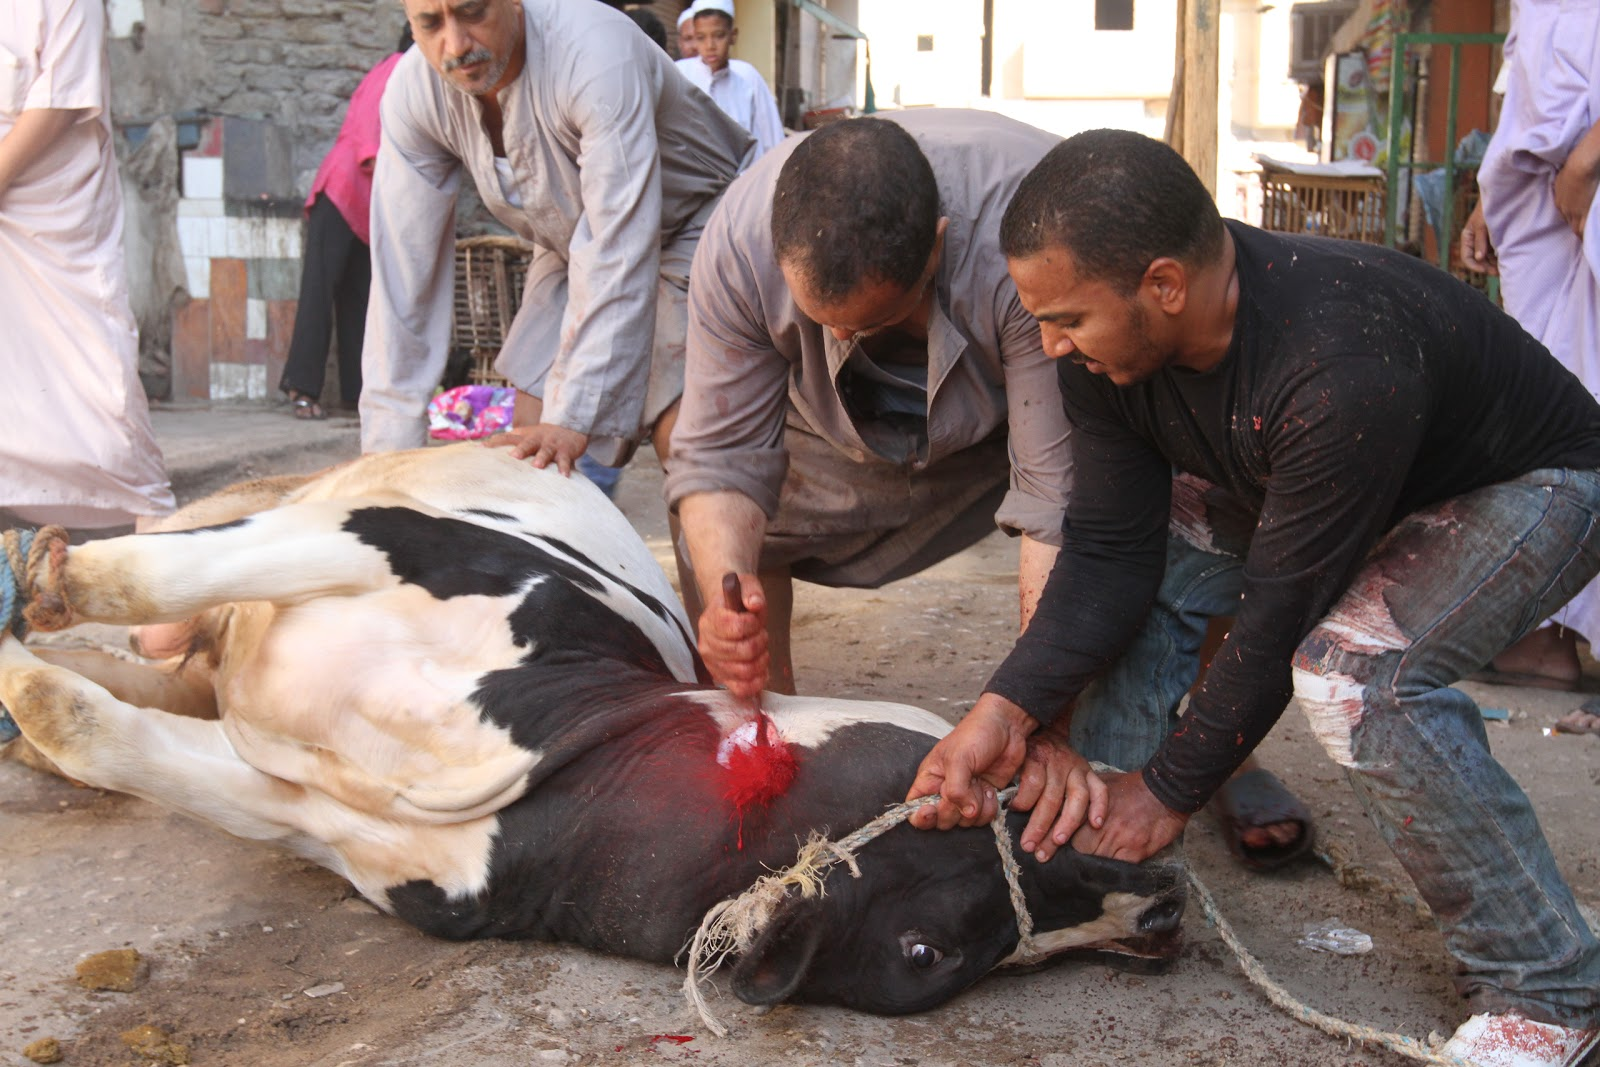 Slaughtering Animals in Streets a Sin says Egypt's Top Religious Institution